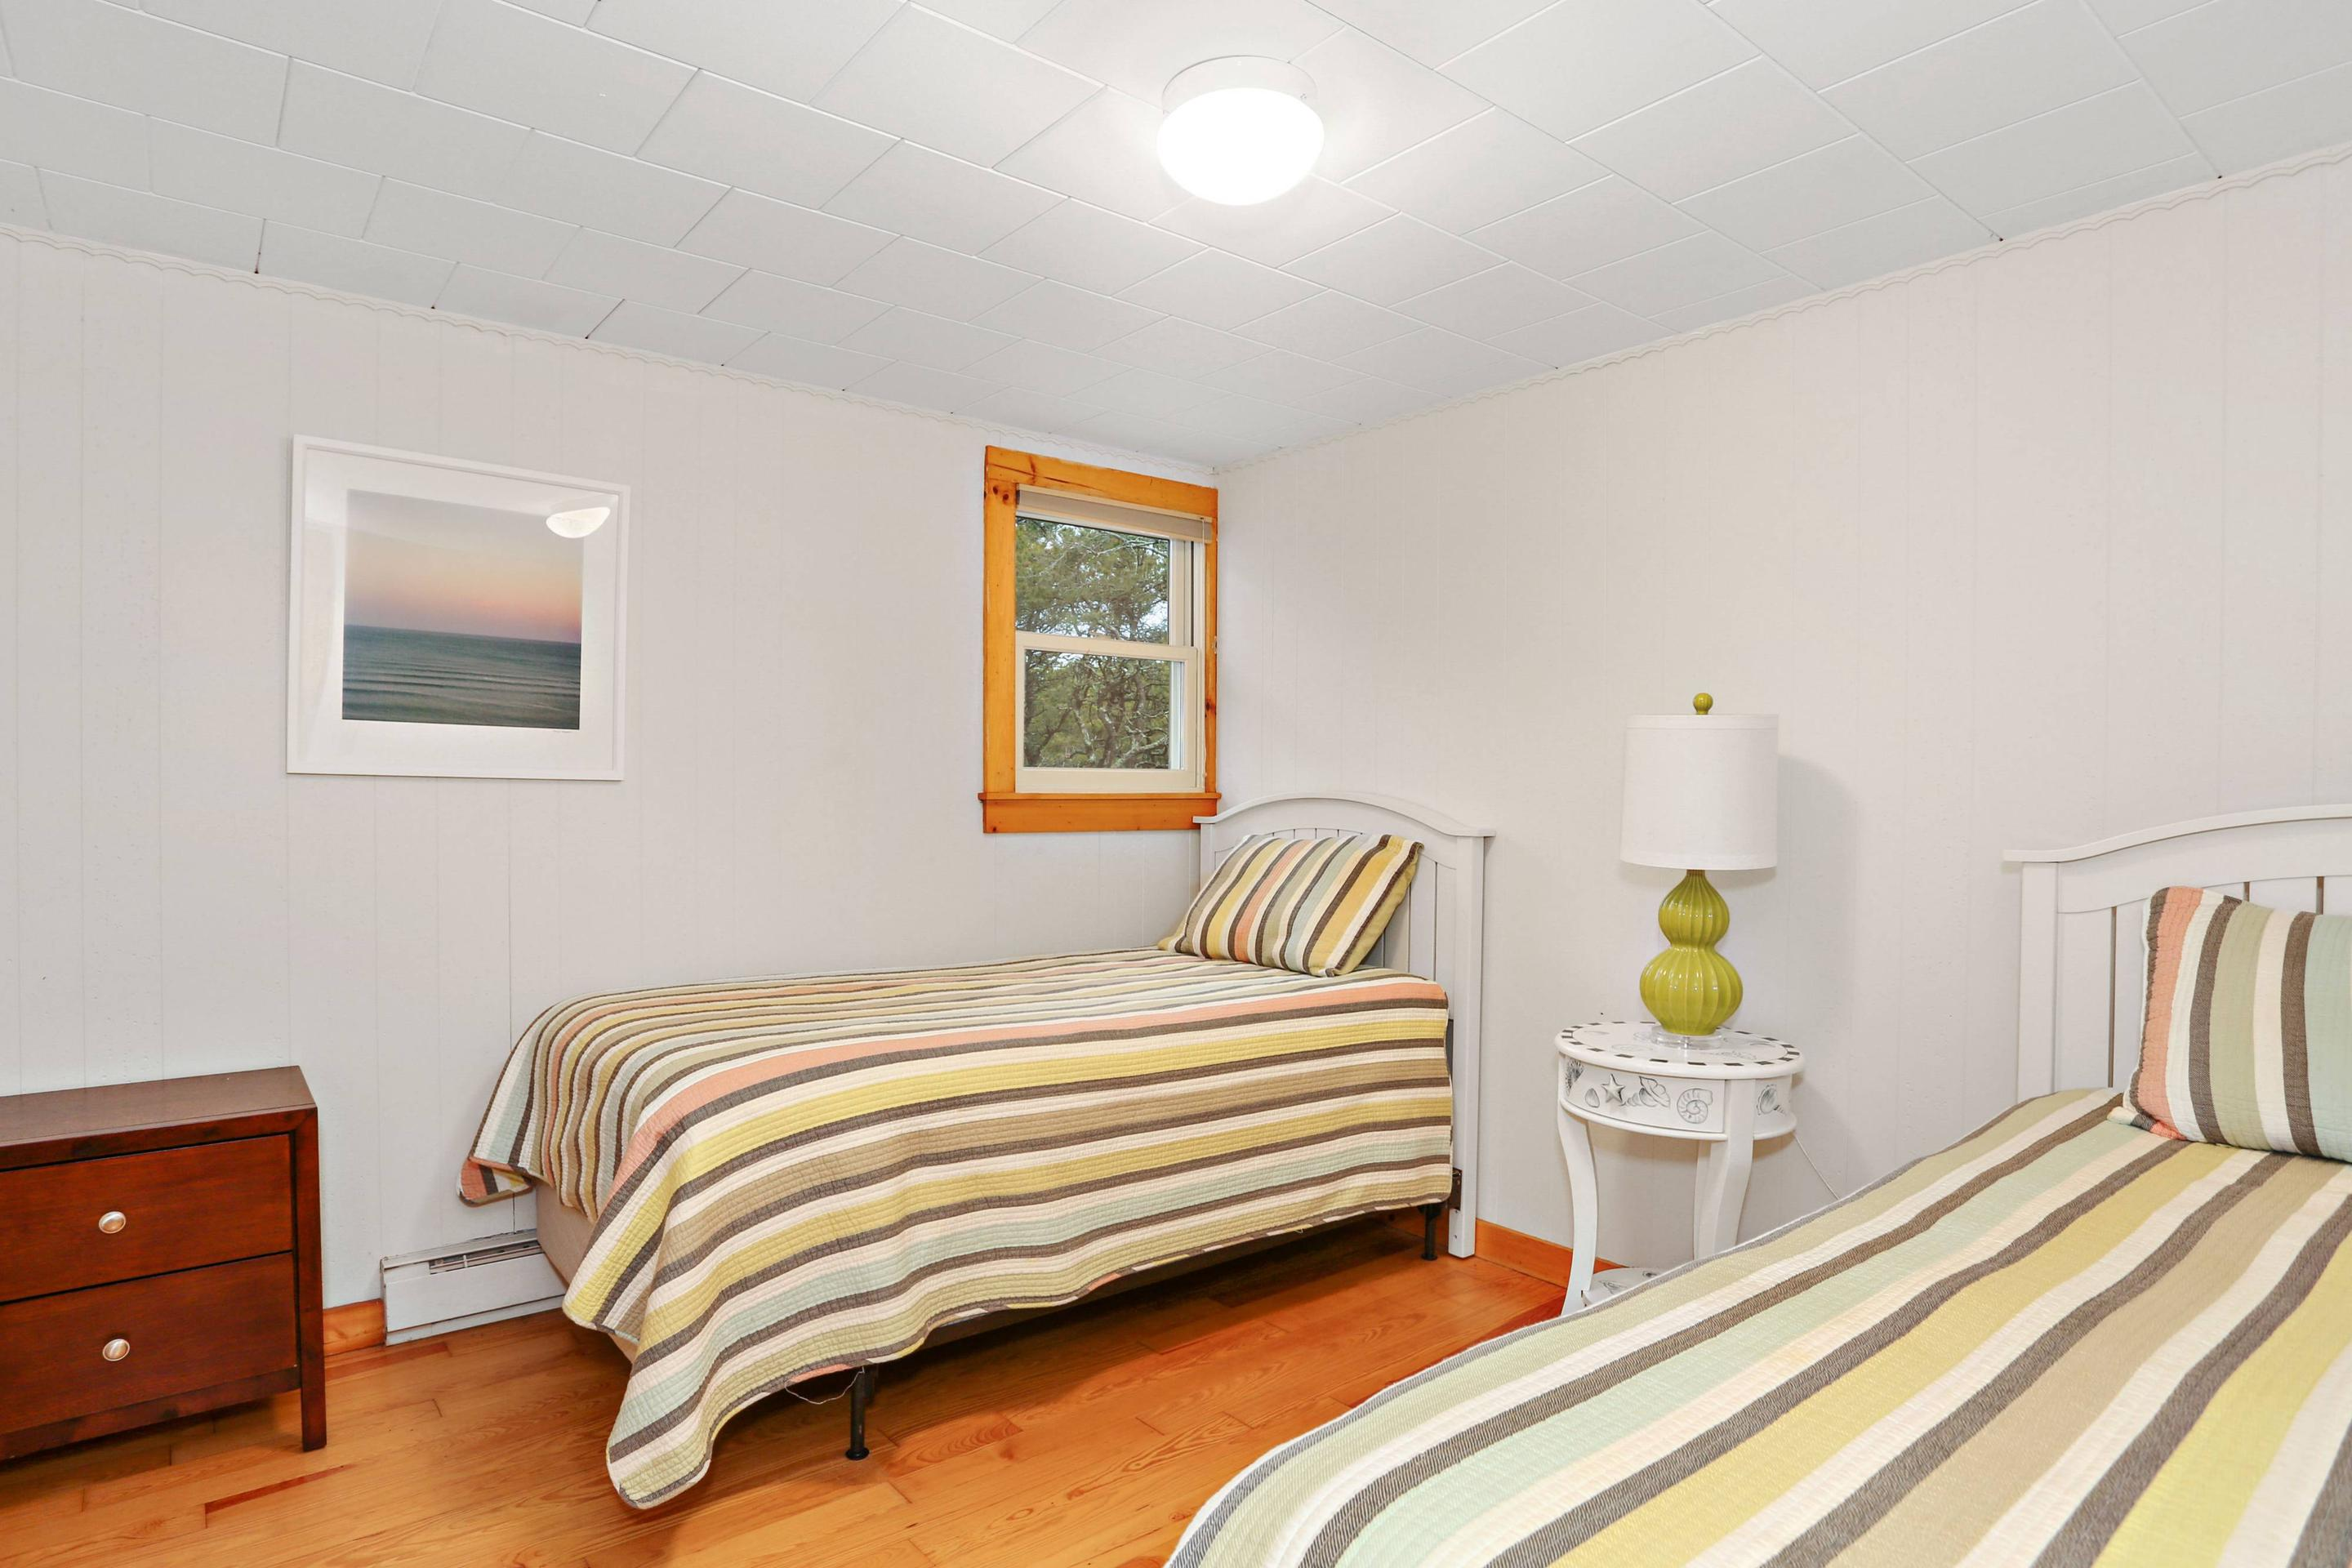 Two twin beds are available in one of the rooms